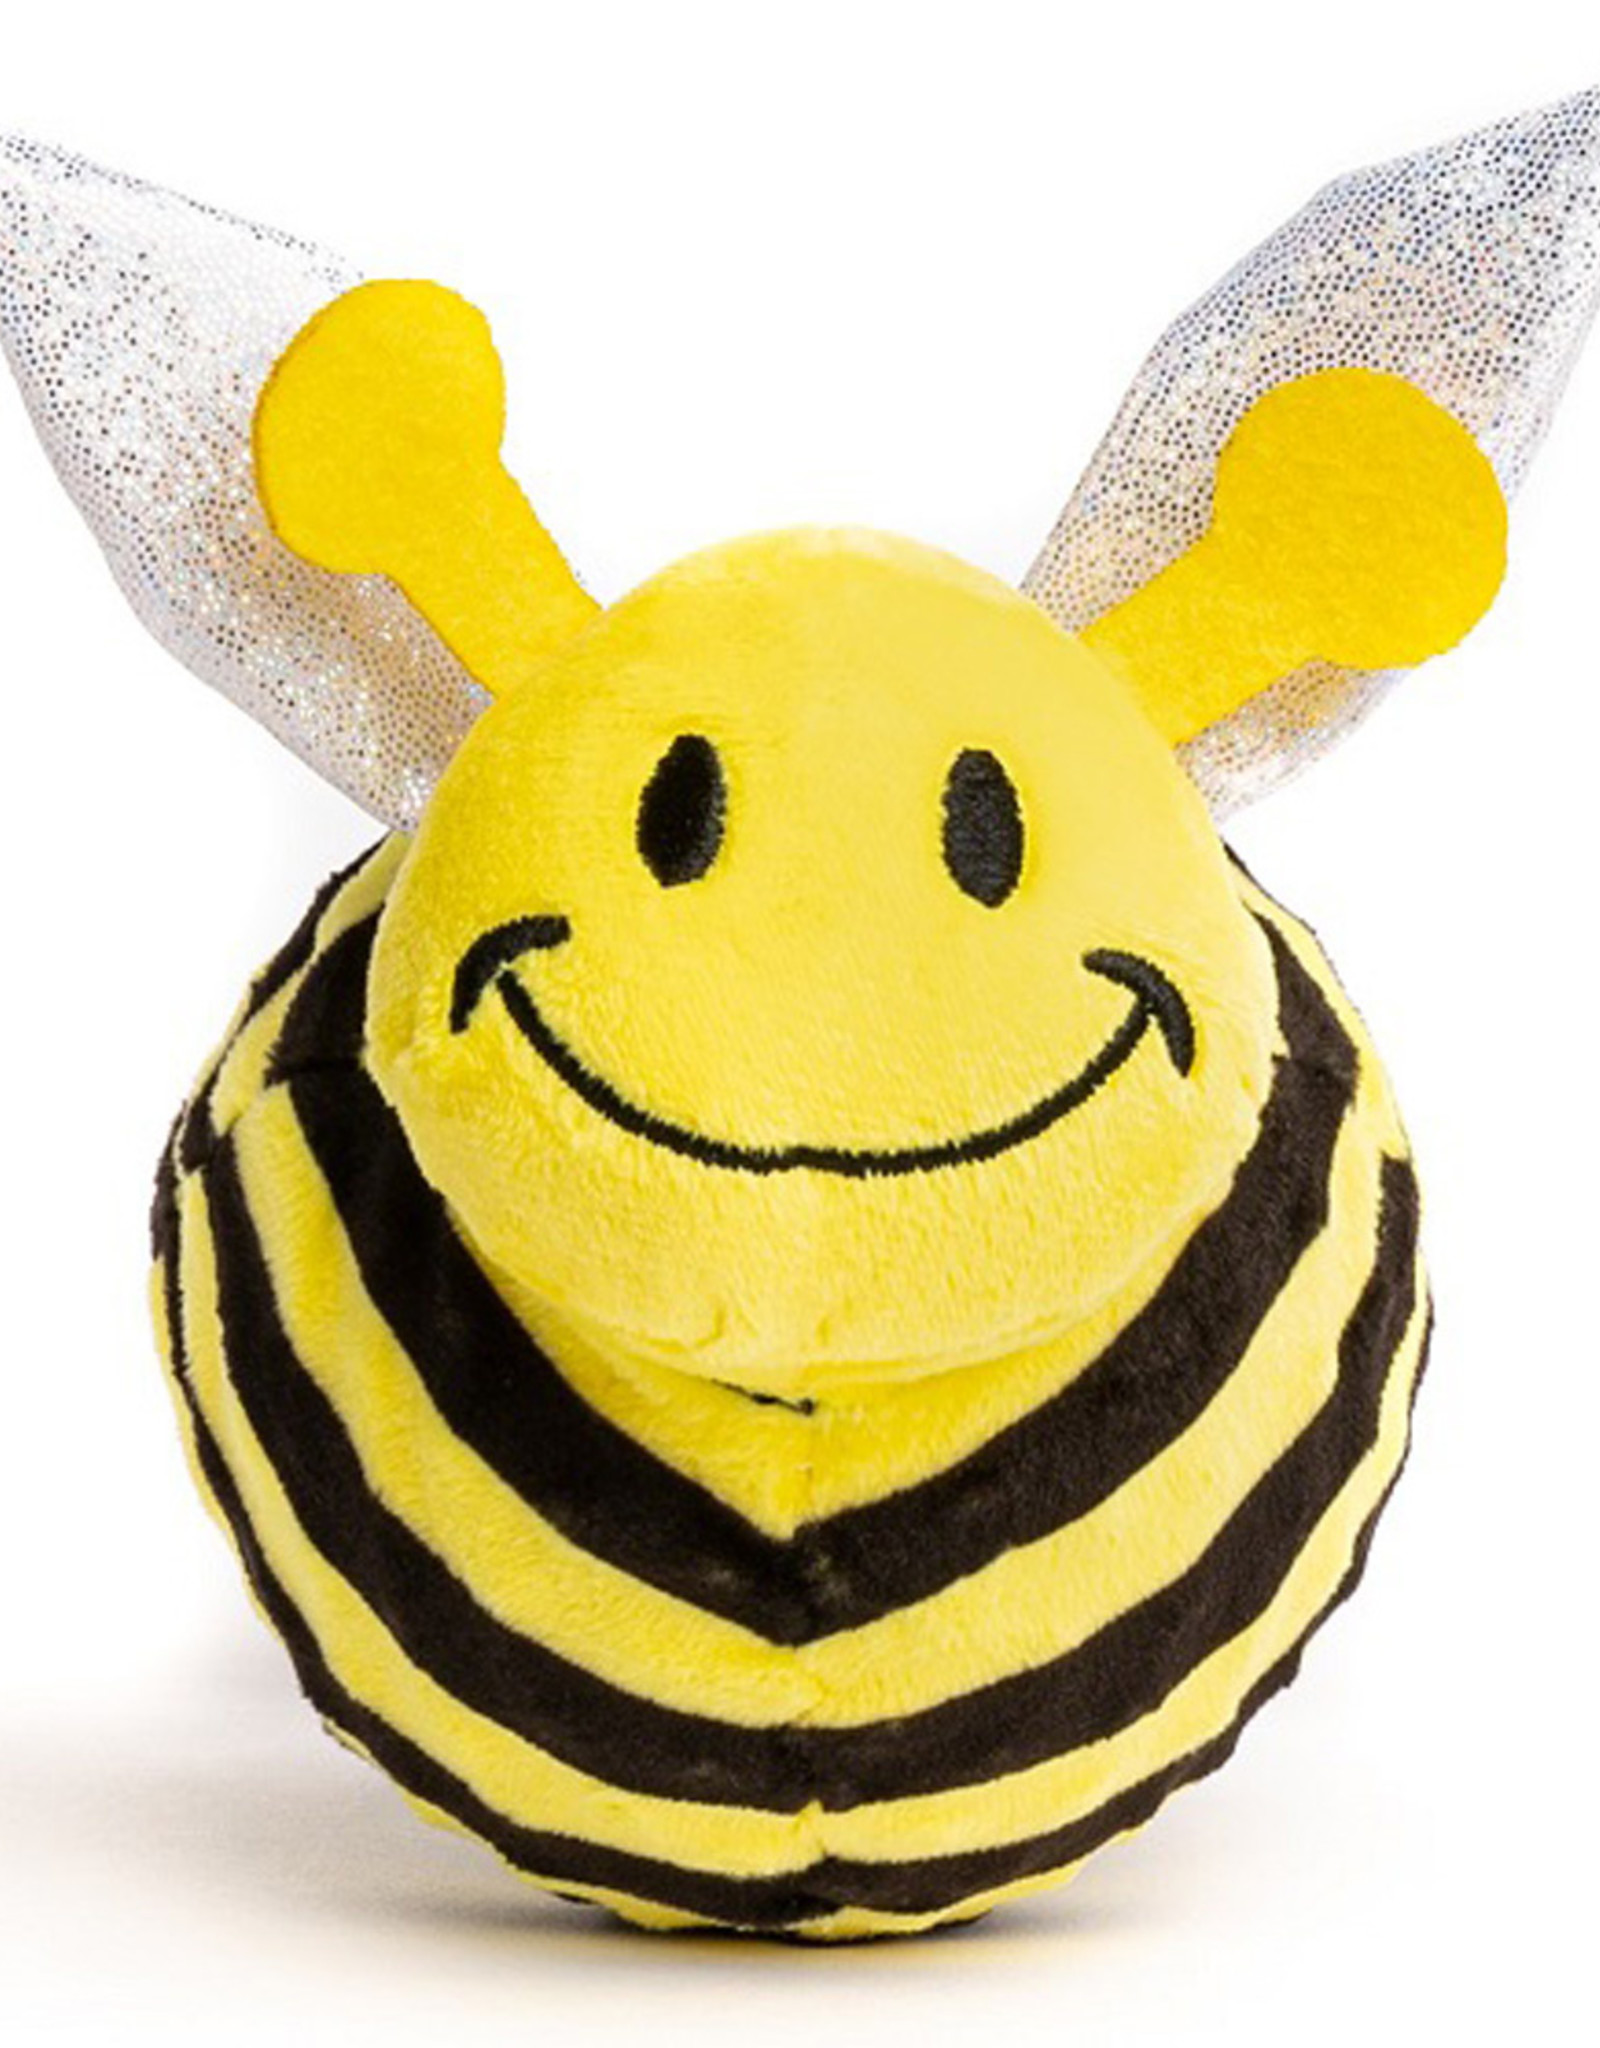 Fabdog Bumble Bee faball Squeaky Dog Toy